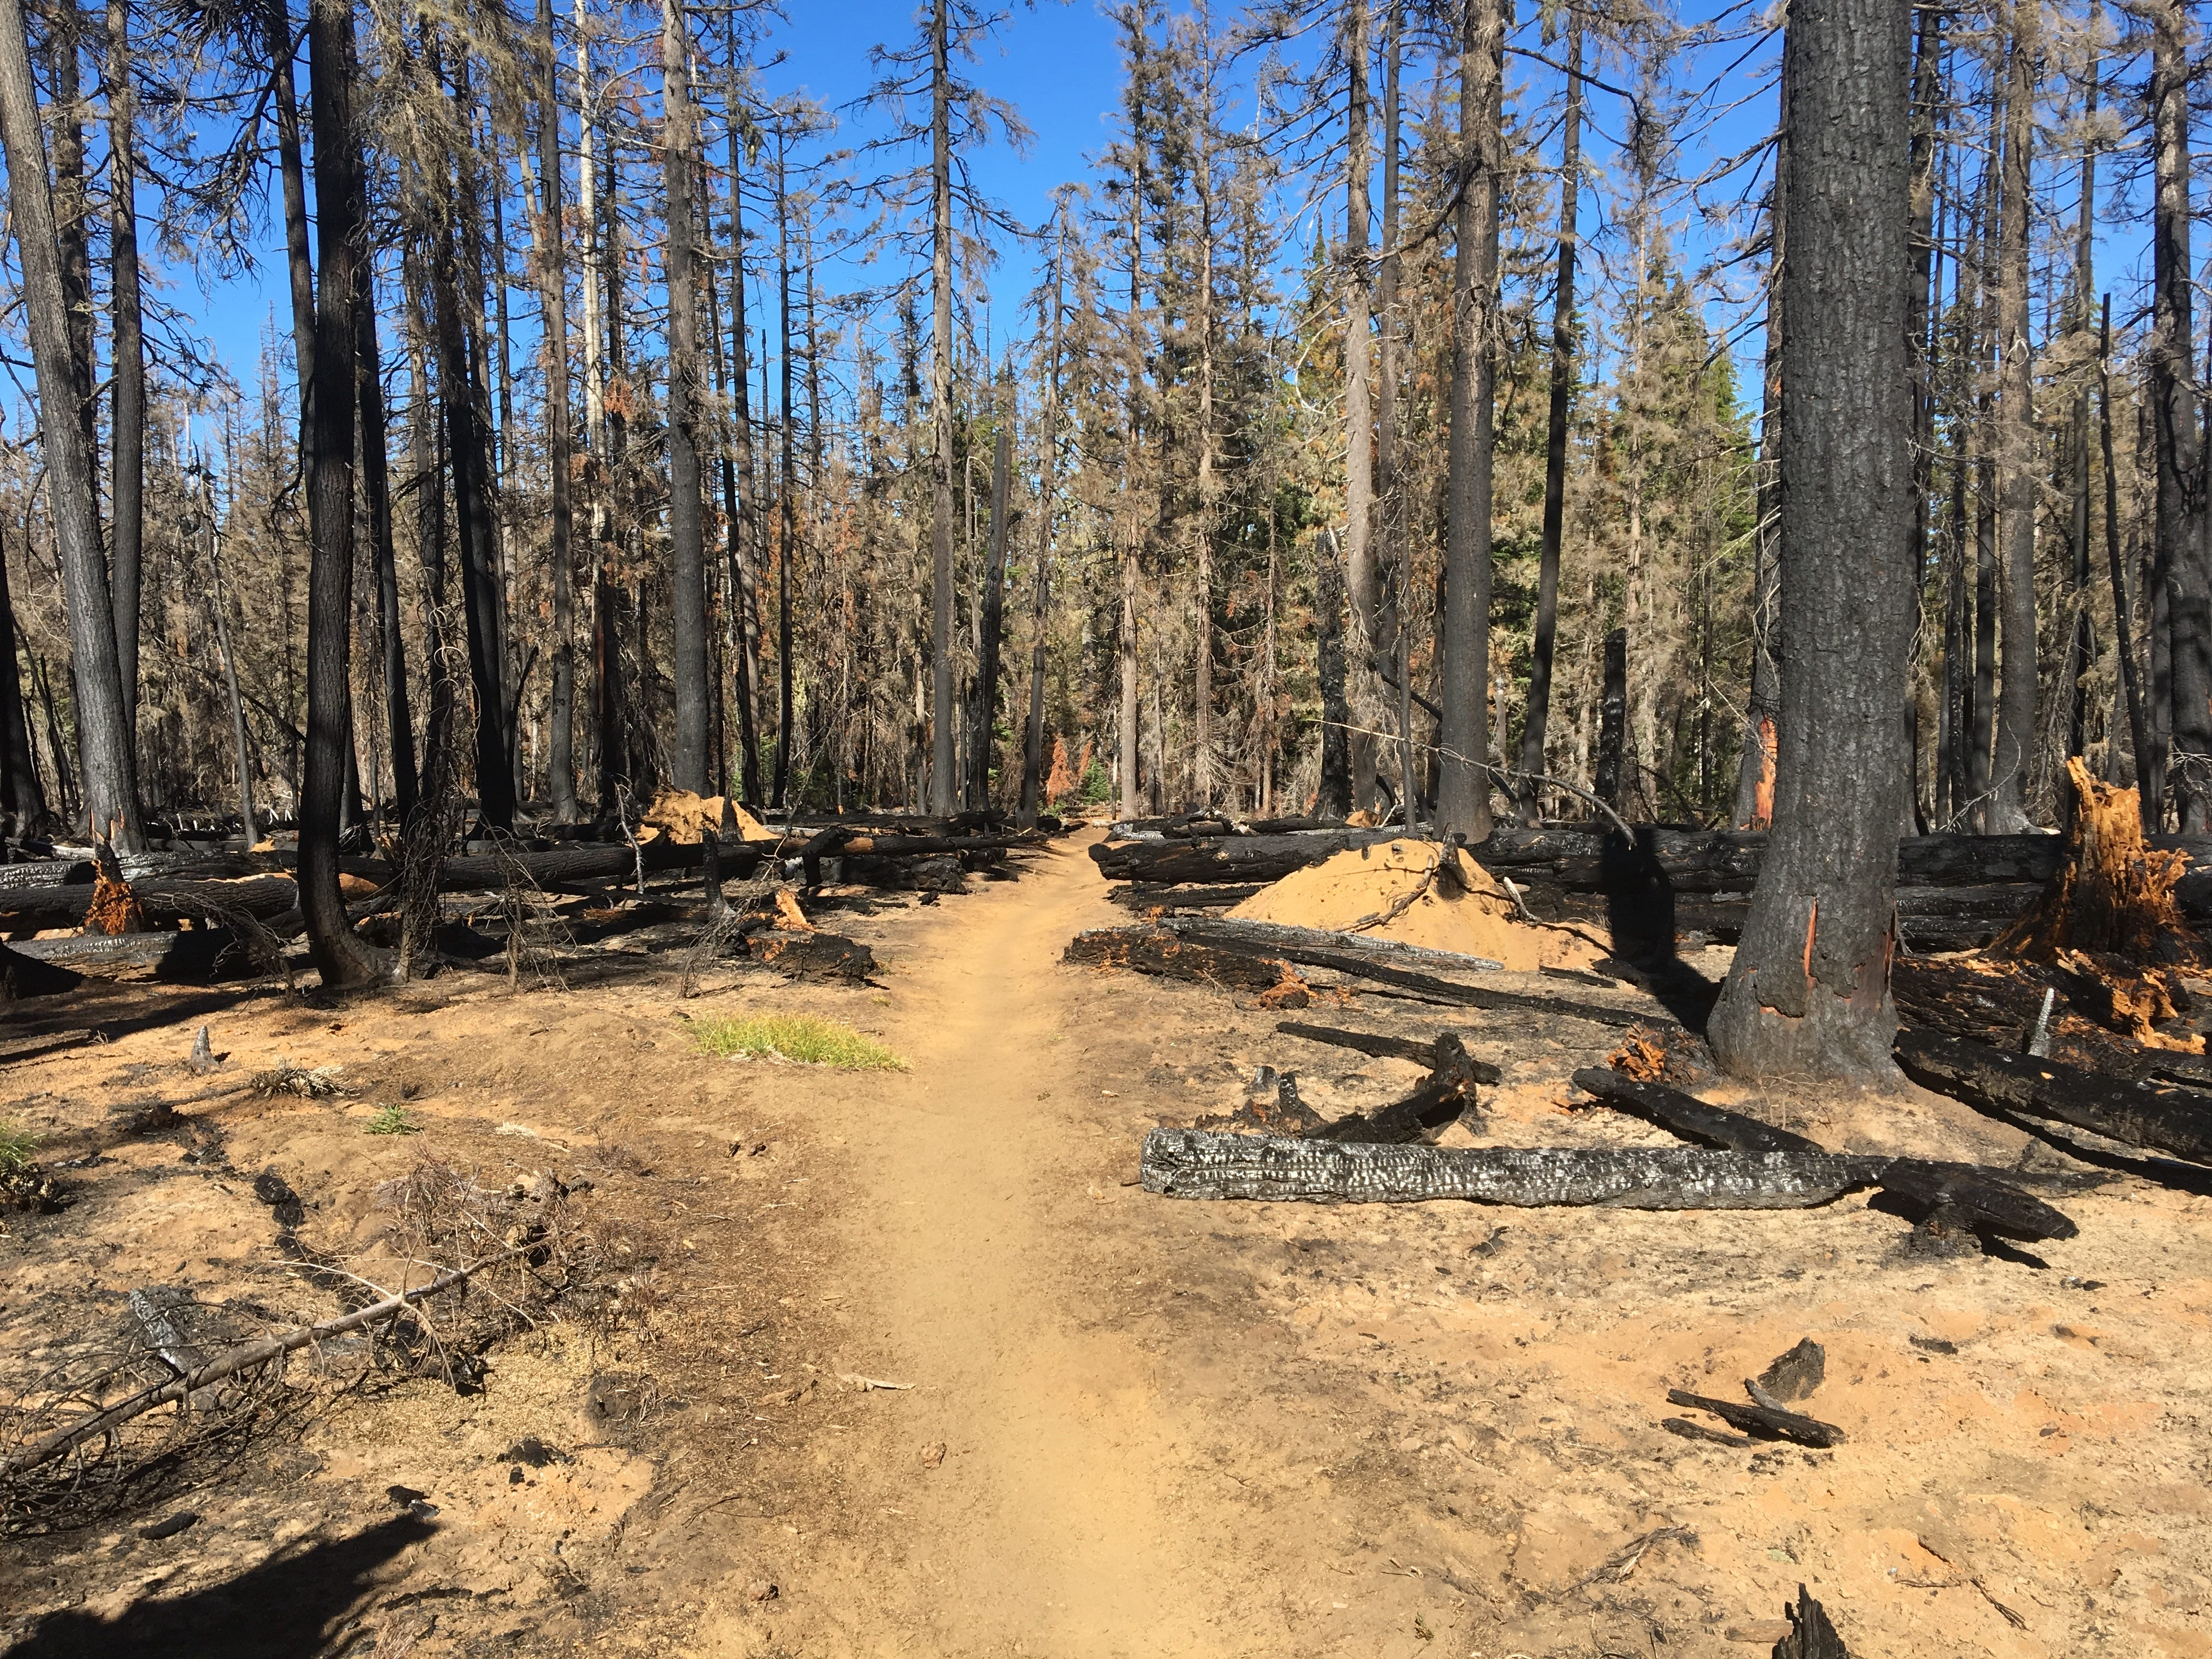 The Obsidian Trail was burned by the Horse Creek Complex fires in 2017.